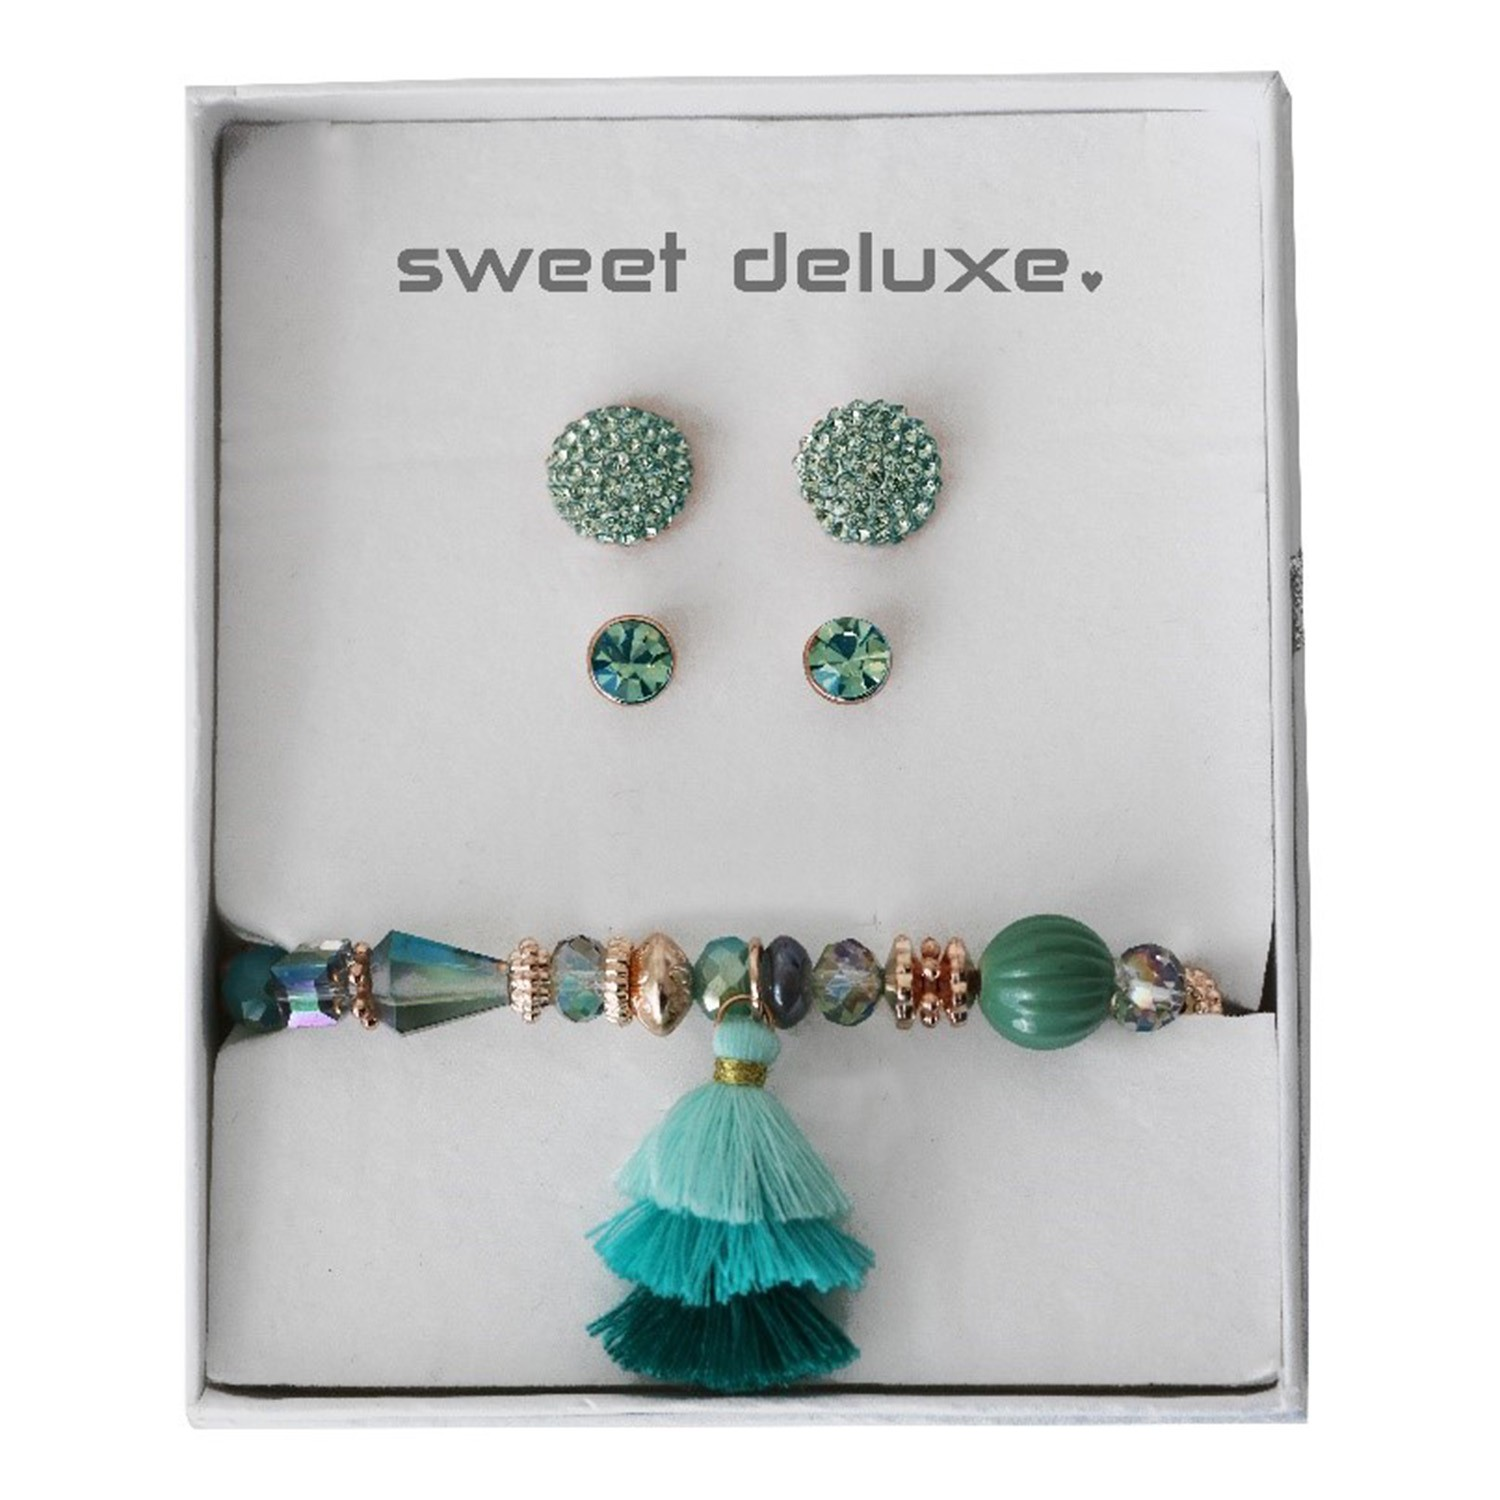 Box 2 earrings, 1 Blet summer teal 0